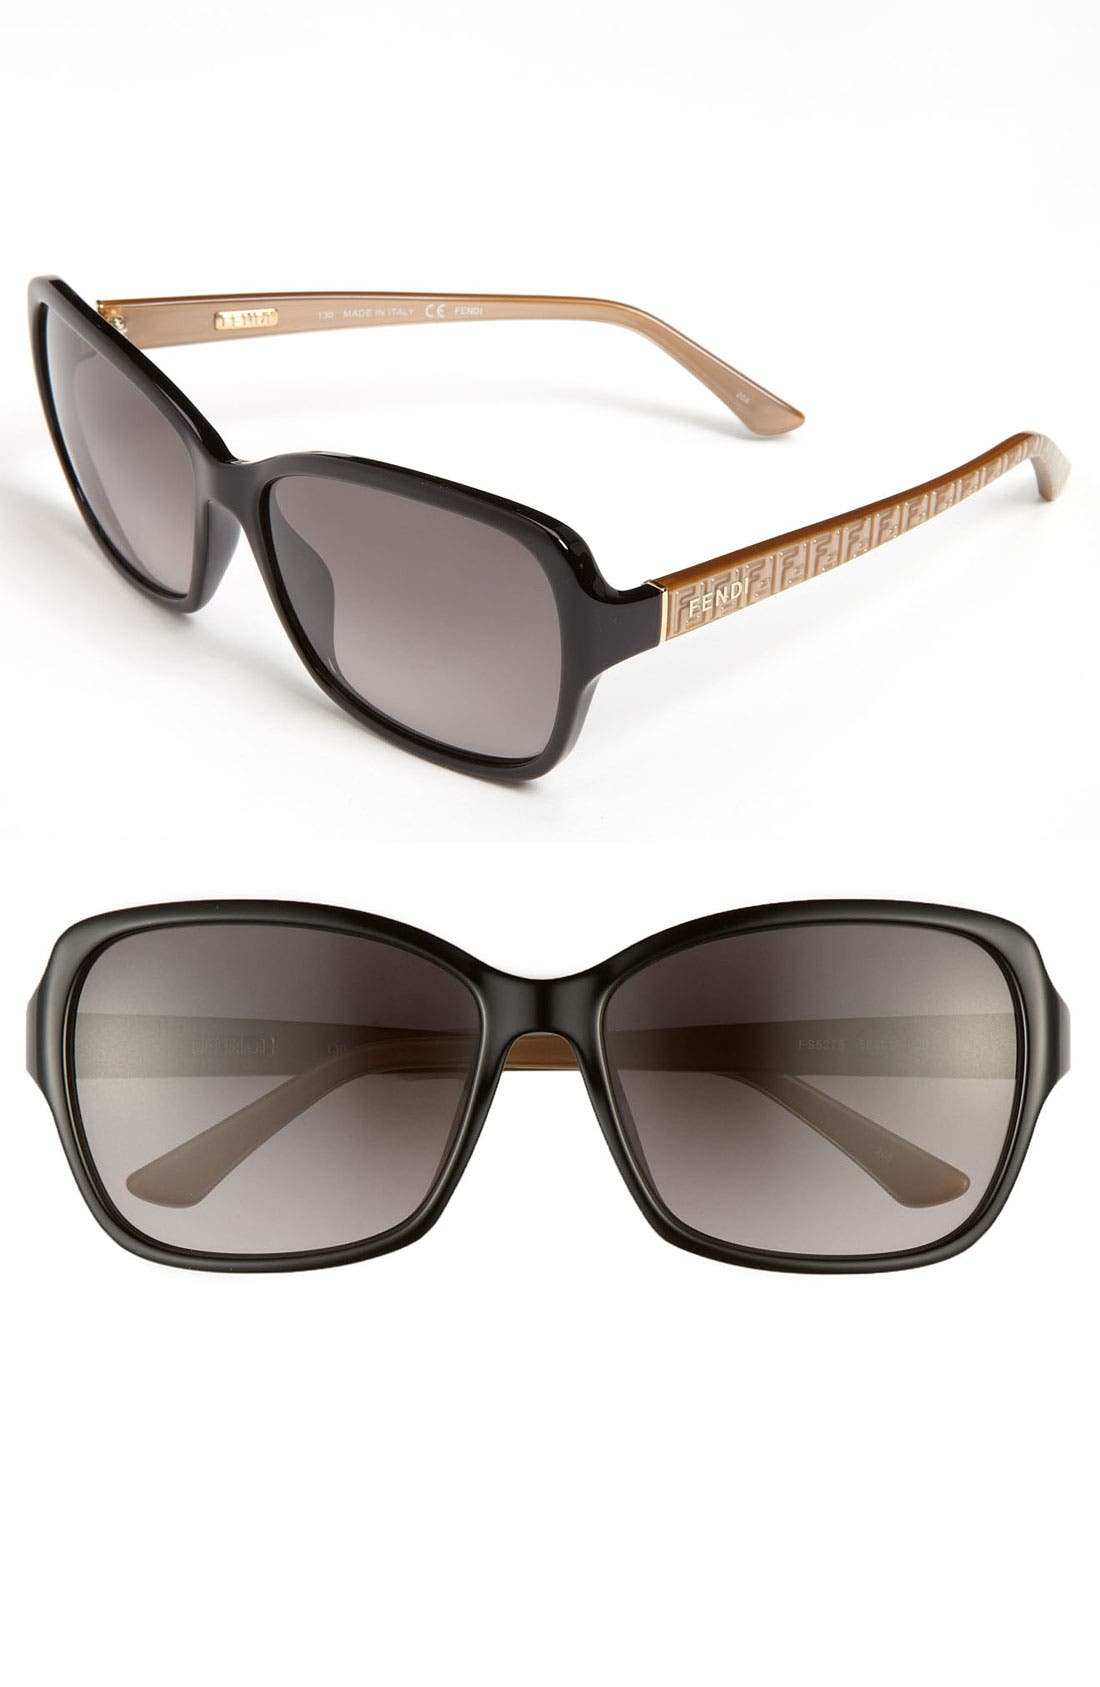 Main Image - Fendi 'Basic Mini Logo' 58mm Sunglasses